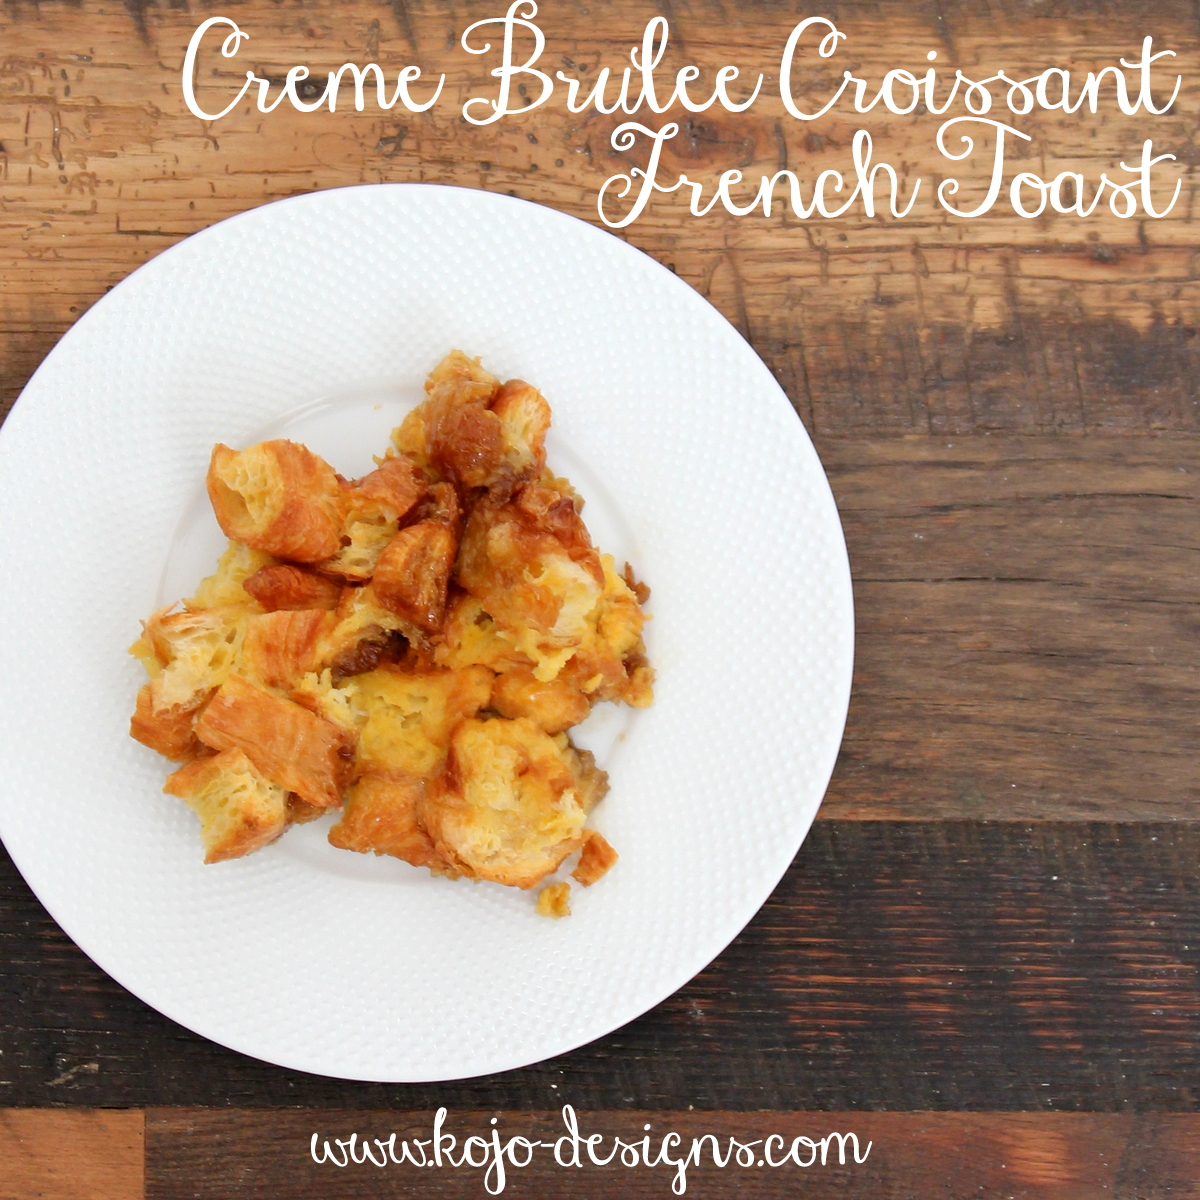 creme brulee croissant french toast recipe, kojodesigns